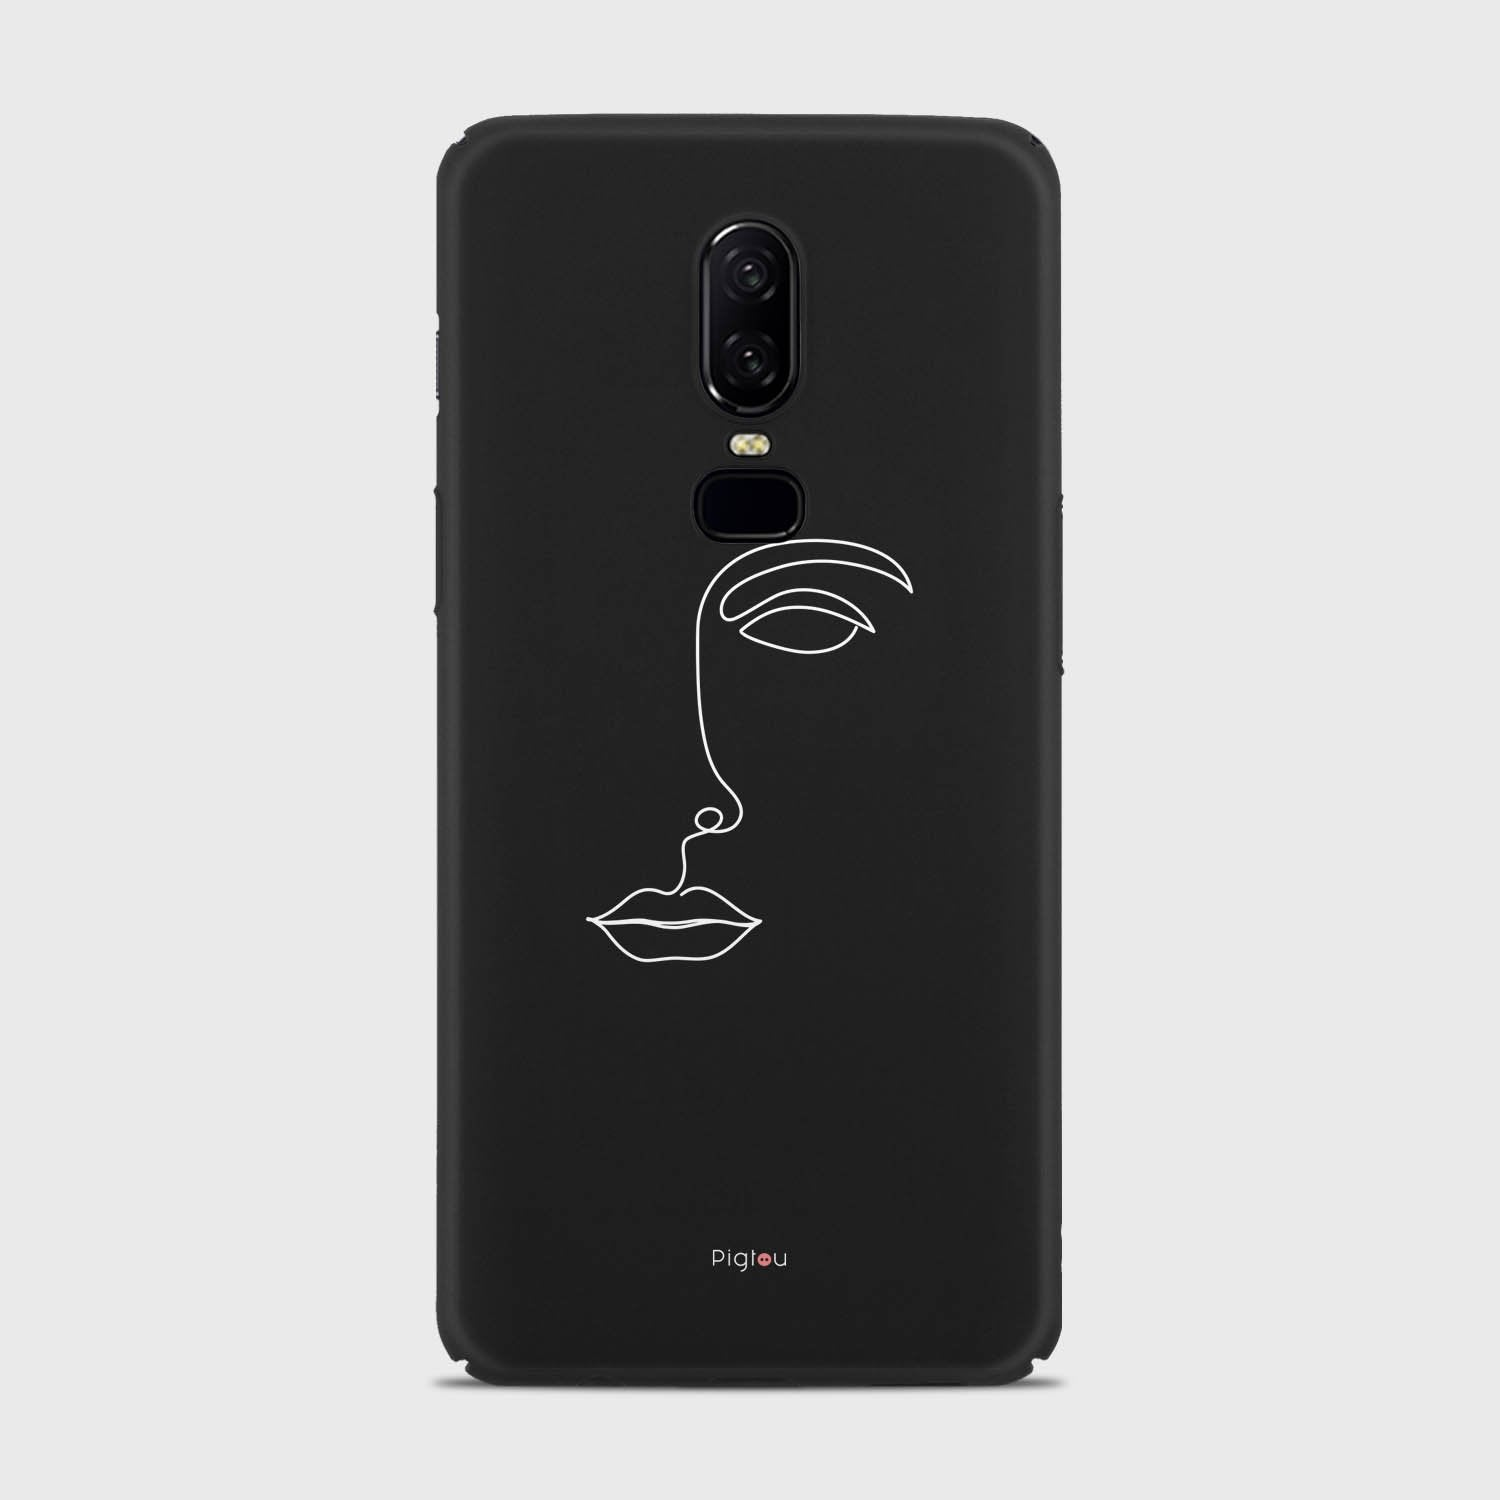 SILHOUETTE FACE Oneplus 8 Pro cases | Pigtou